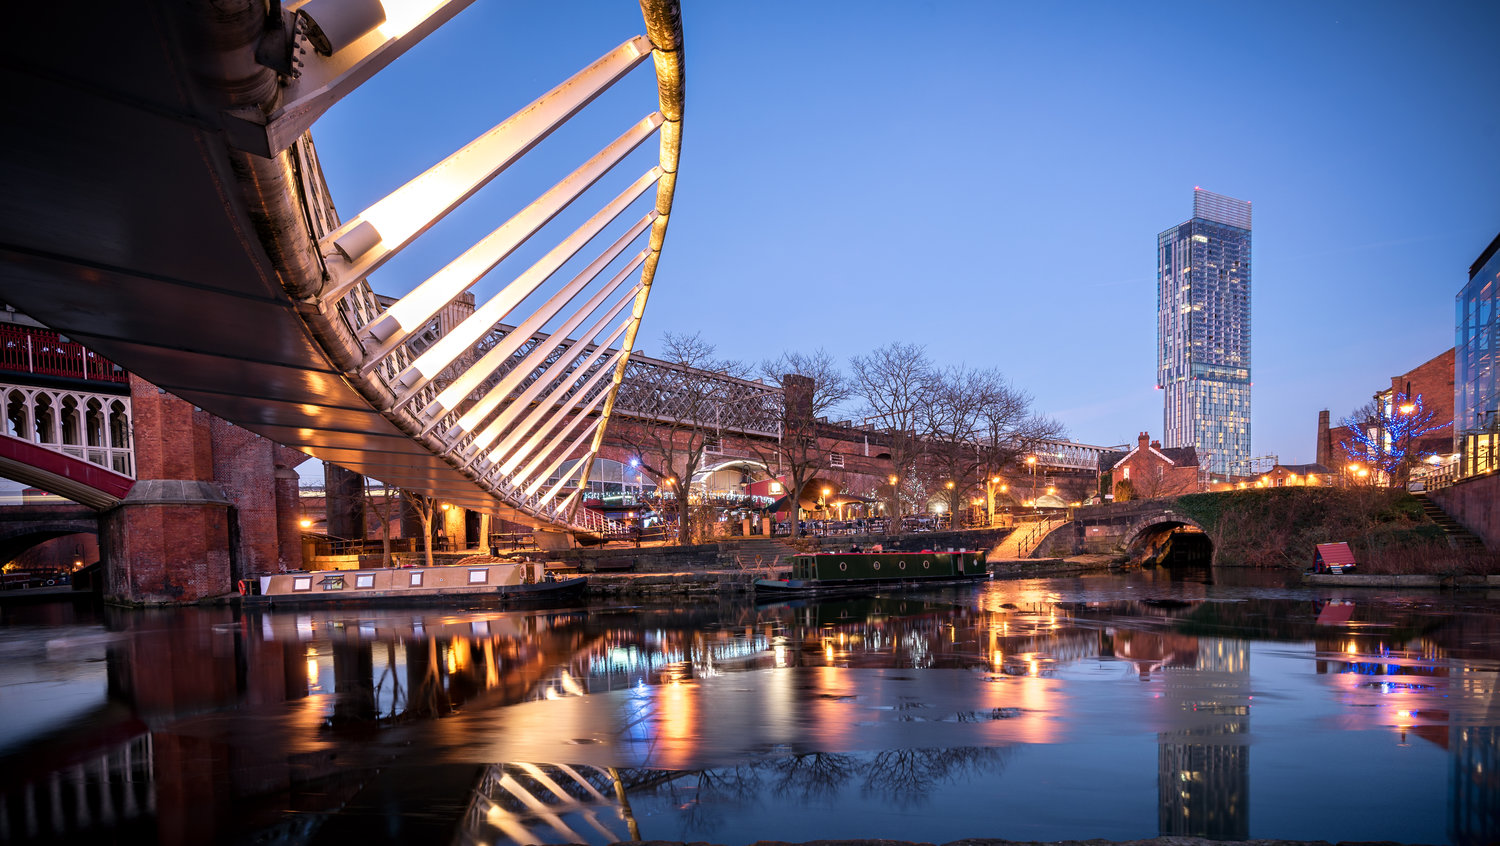 Castlefield - an inner city conservation area of Manchester